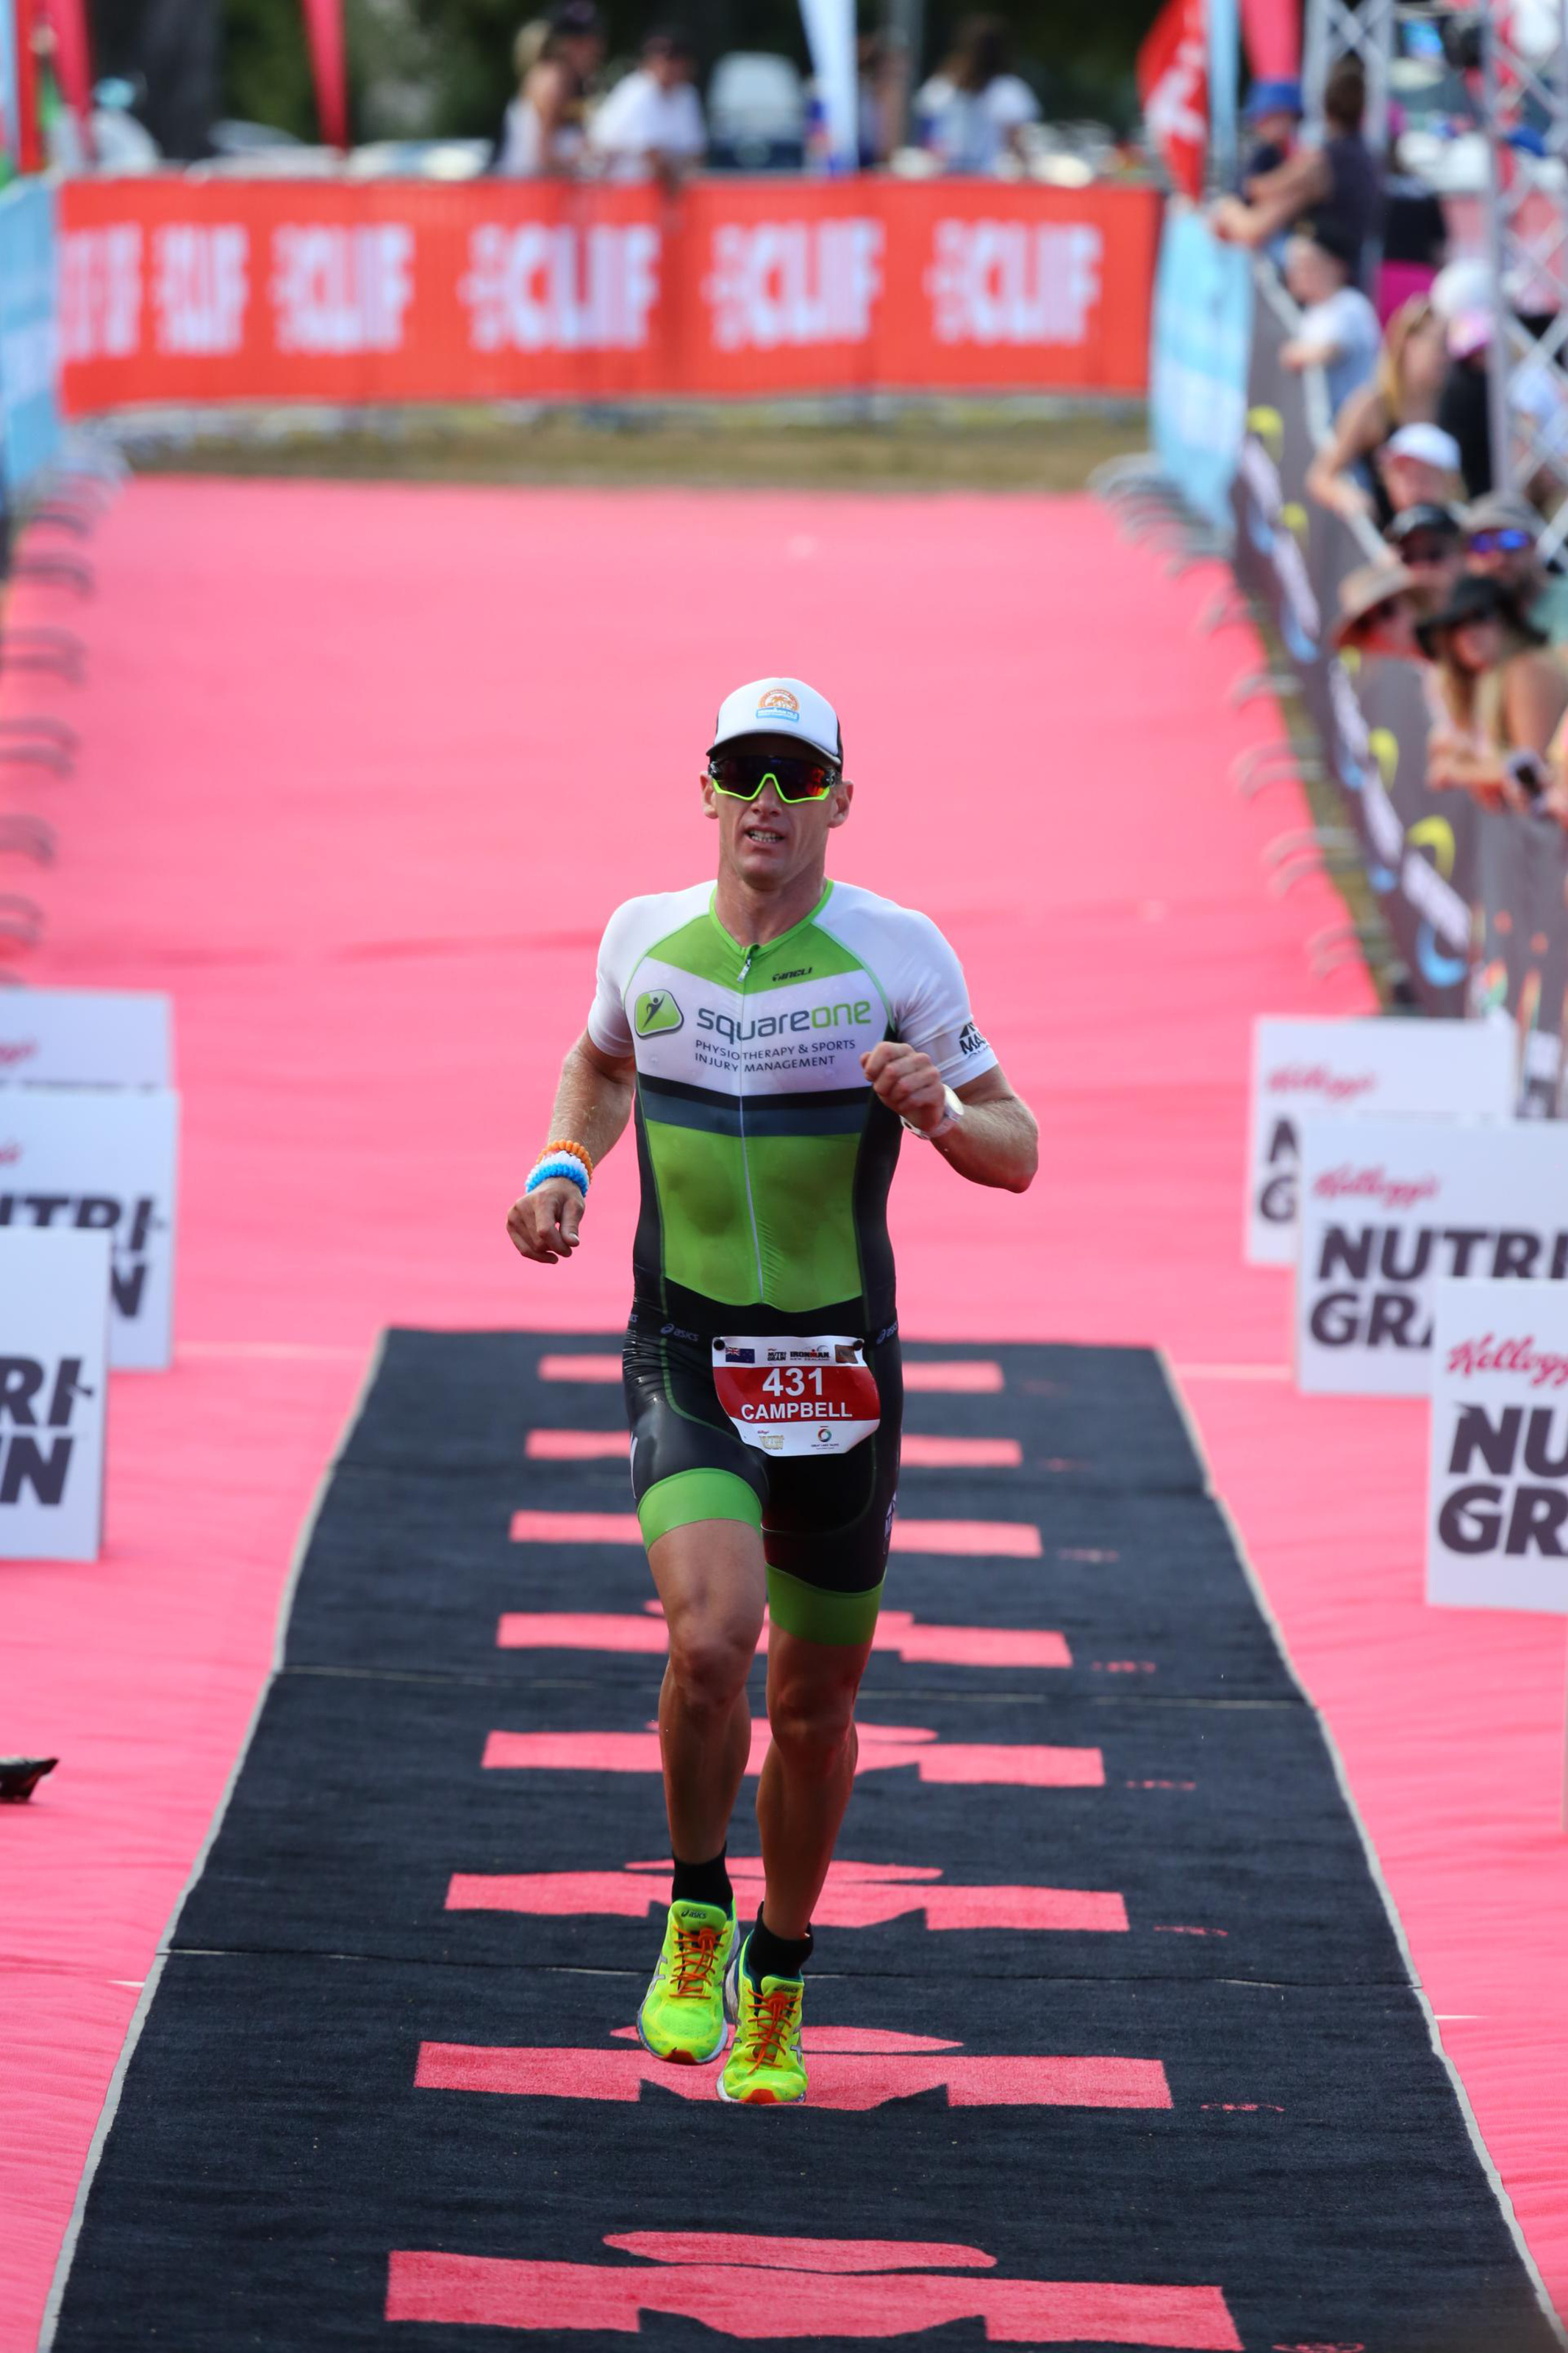 CAMPBELL HANSON     Name:  Campbell Hanson  Age group:  40-44  Race or program you qualified through:    Western Sydney 70.3  Have you been to any triathlon world champs before (any distance)?     If so, which ones/years?    70.3 WC Las Vegas 2012, ITU Olympic Distance WC Auckland 2012, Ironman World Champs Kona 2013. Last century I qualified for 2 ITU Junior World Champs in Cancun (1995) and Clevelend (1996) but didn't go. Yes, last century!    What are you most looking forwards to about the race and over course of the weekend?  Cashing in on all the training deposits that have been banked lately! Catching up with friends and seeing how I stack up against the rest of the field.    What has been your strategy to survive training through Australian winter?    switching to an indoor swimming squad has been much better and more enjoyable.    What have been the key focus points in your training and preparation for the world champs?    Recovery!! Making sure the recovery, sleep quality and some Yoga at home has been a big focus for me. Ironman NZ back in March I went in under recovered and fatigued and paid for it. Slightlyess volume but more quality and better execution within sessions has also been a focus. Keeping a closer watch on my training stress balance scores as another means of monitoring has also helped.    Have you heard about the infamous hill on the bike course with rumours of up to a 30% gradient? What is your strategy to make it up in one piece?    Heard about the hill! Strategy has been to put a 28 on the back so the quads don't blow out and then just chill when riding up it. Let the hammerheads go if anyone really feels they feel the need to race the hill clim    Do you have any goals for the race?    stick to my race plan and run well off the bike. If I do this I'll have a good race.    Sunny Coast marks the start of the Australian triathlon season; what are your plans for the rest of the season?      2nd part of Porject 2016 - Kona 5 weeks later. Training has been built around this so will be a little underdone on the speed side of things for Sunny Coast but it's a perfect pre Kona hit out and a great chance to race a WC in Australia so I'll be doing a short taper and having a good crack on the day. I'll recover well post race and put in a couple of weeks hard work before heading to the Big Island. I haven't thought too far past October 8!    What kit will your be wearing?    SquareOne race suit    What bike will you be riding?    my new S Works Shiv- thanks Manly Cycles and Specialized Australia for the support.